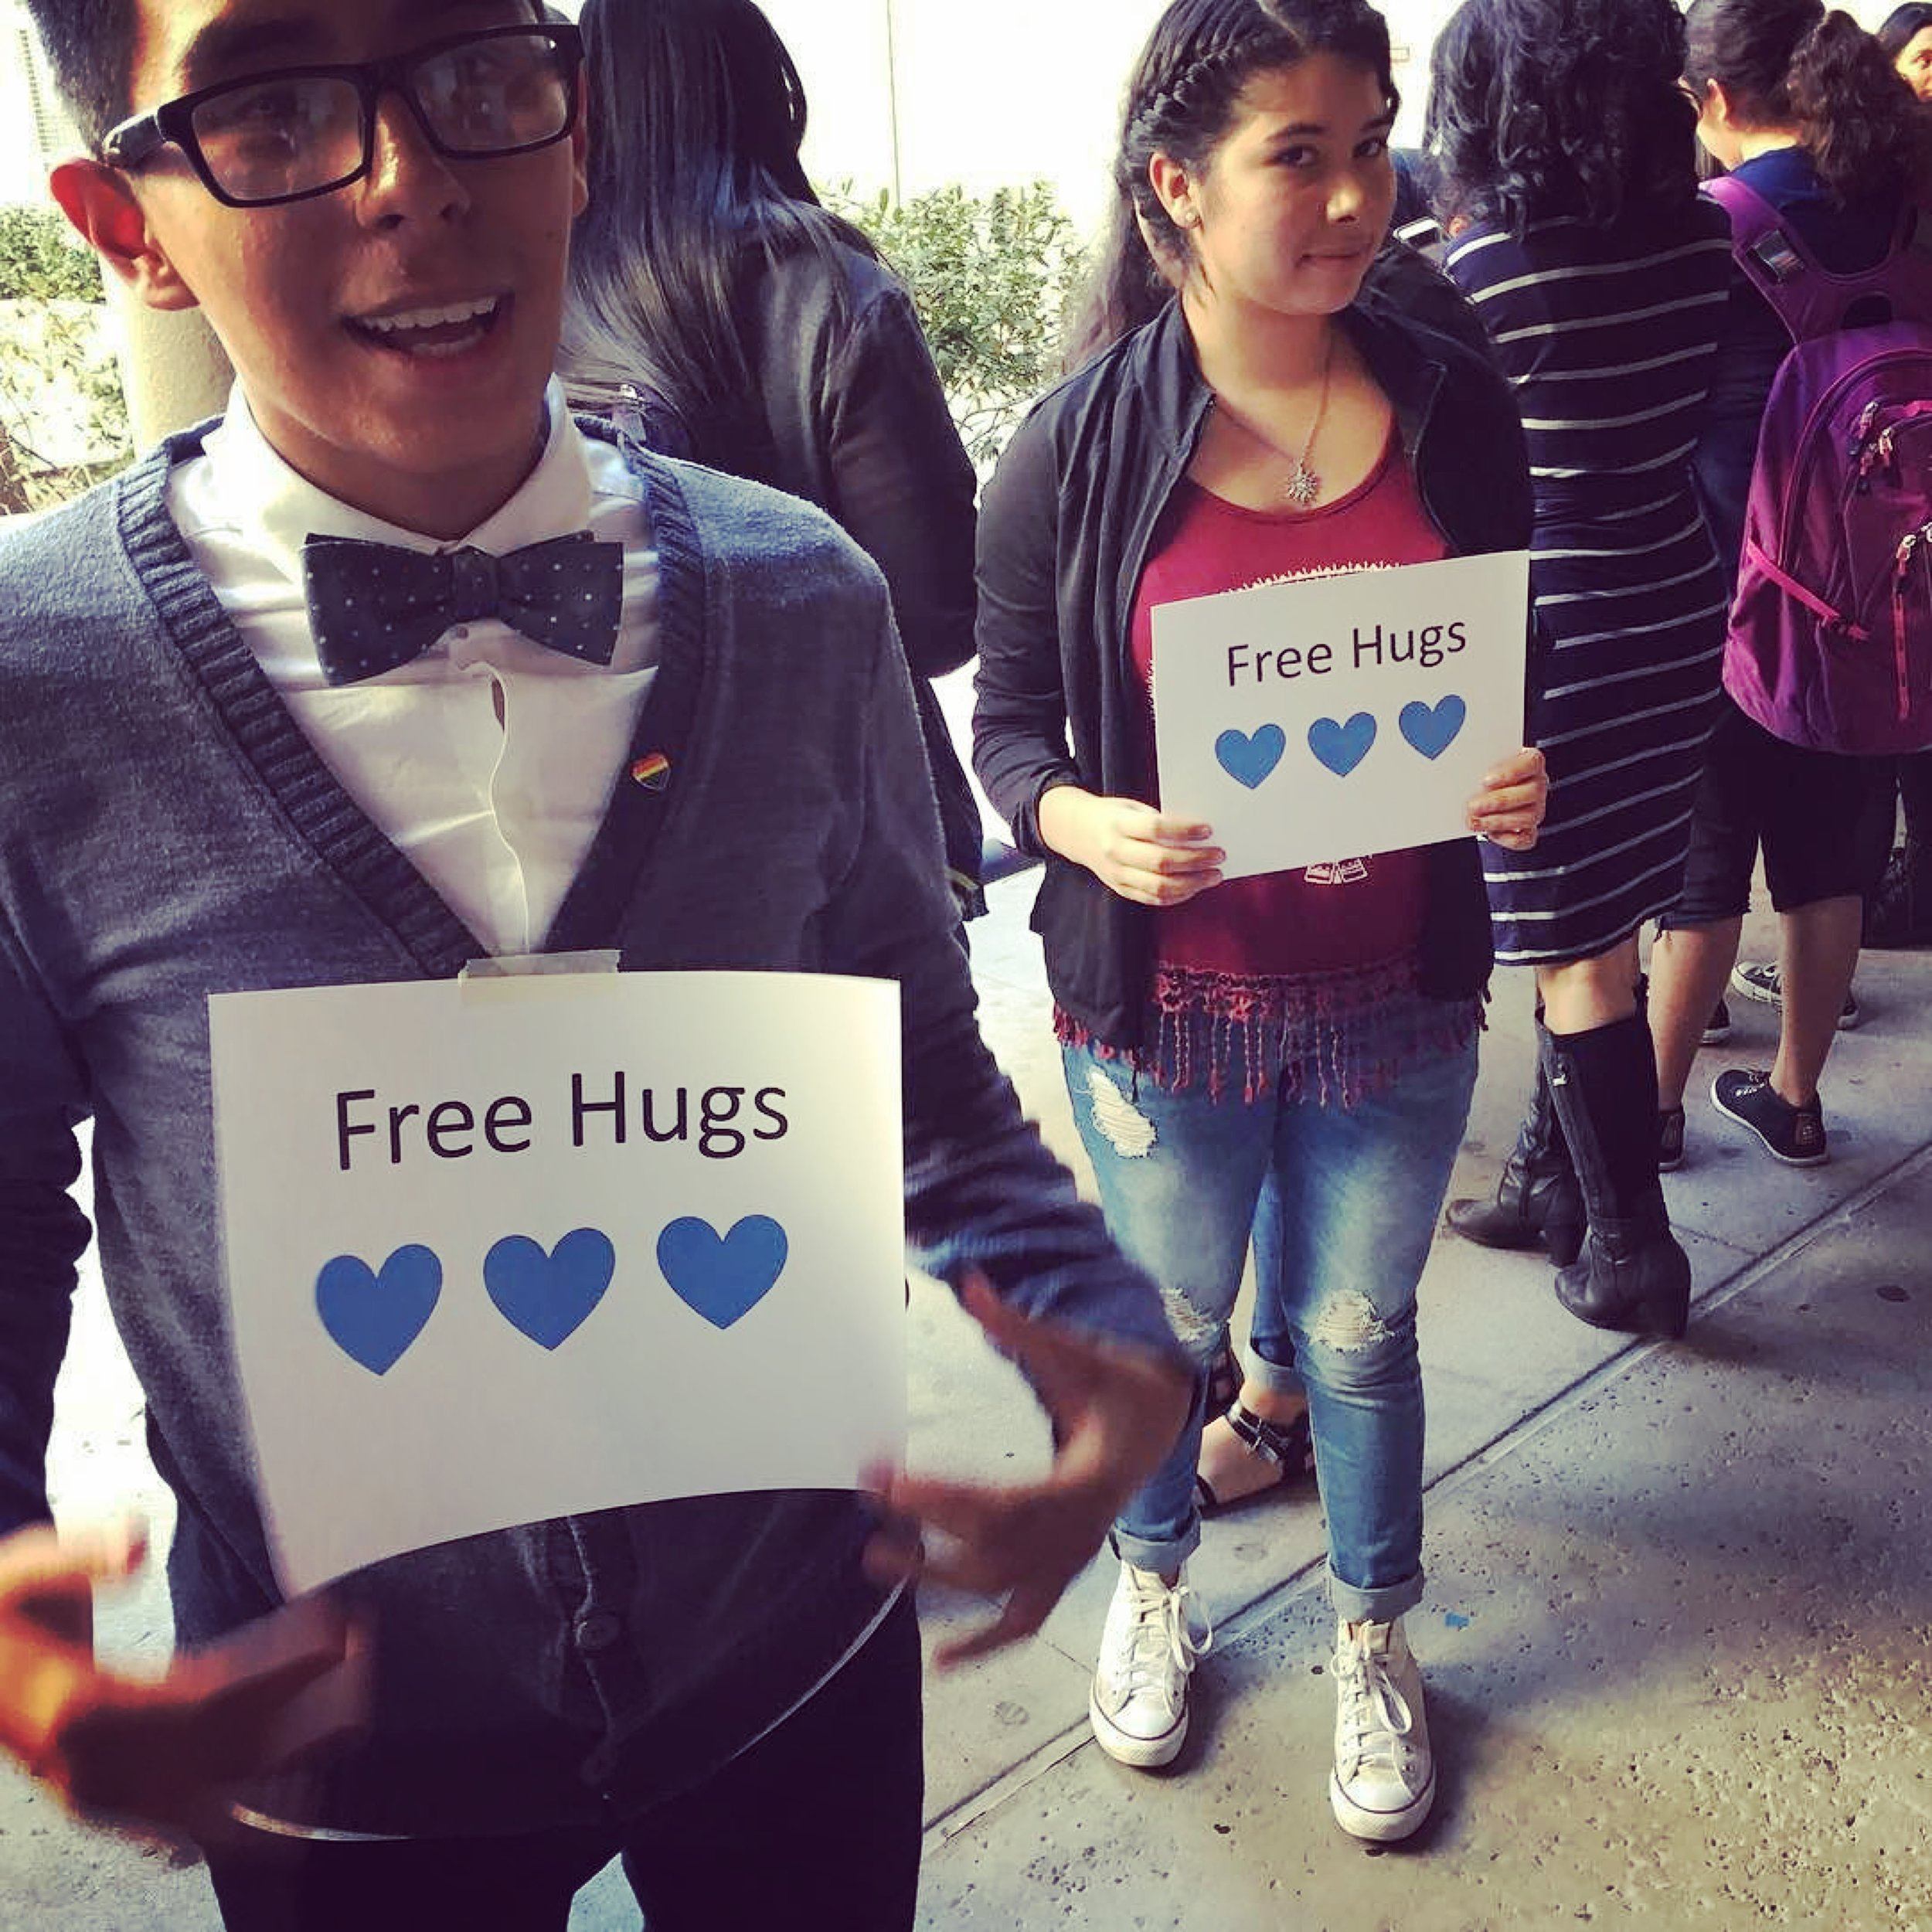 Humanitas Academy of Art &Technology (HAAT) students from Esteban E. Torres High School offer free hugs post-election.  Photo by:  @haatofficial